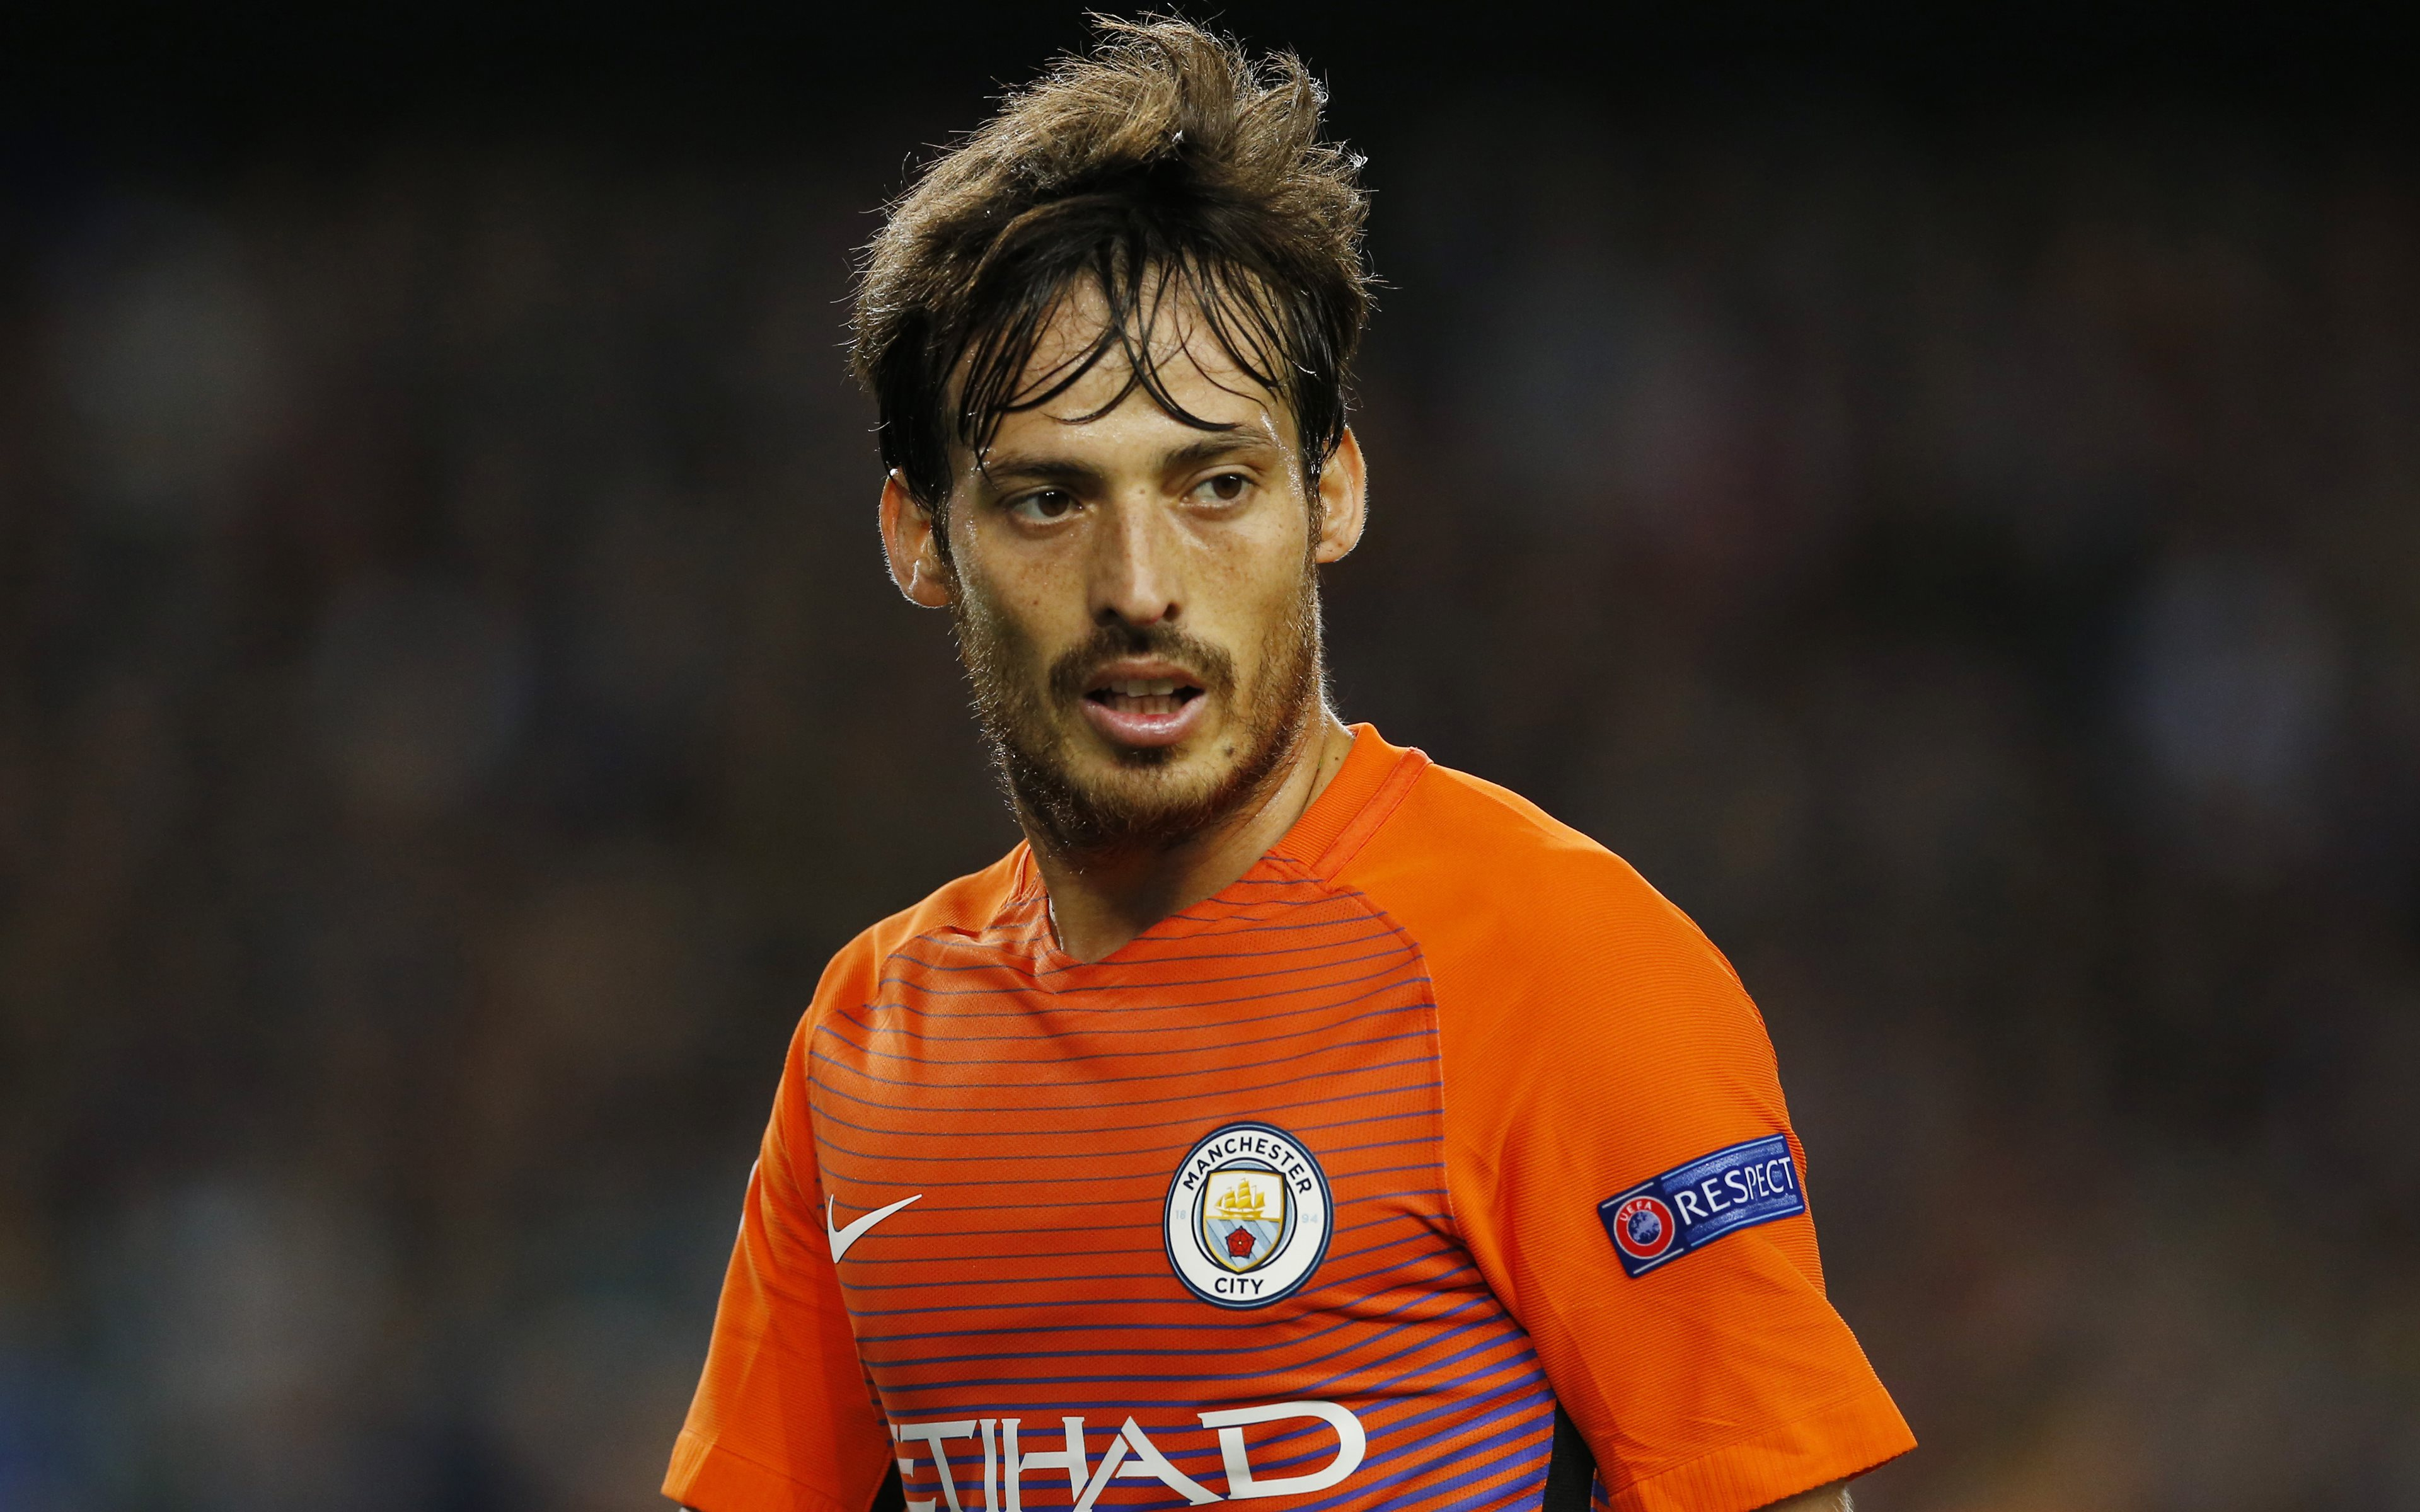 Animated Hd Wallpapers For Laptop David Silva Wallpapers